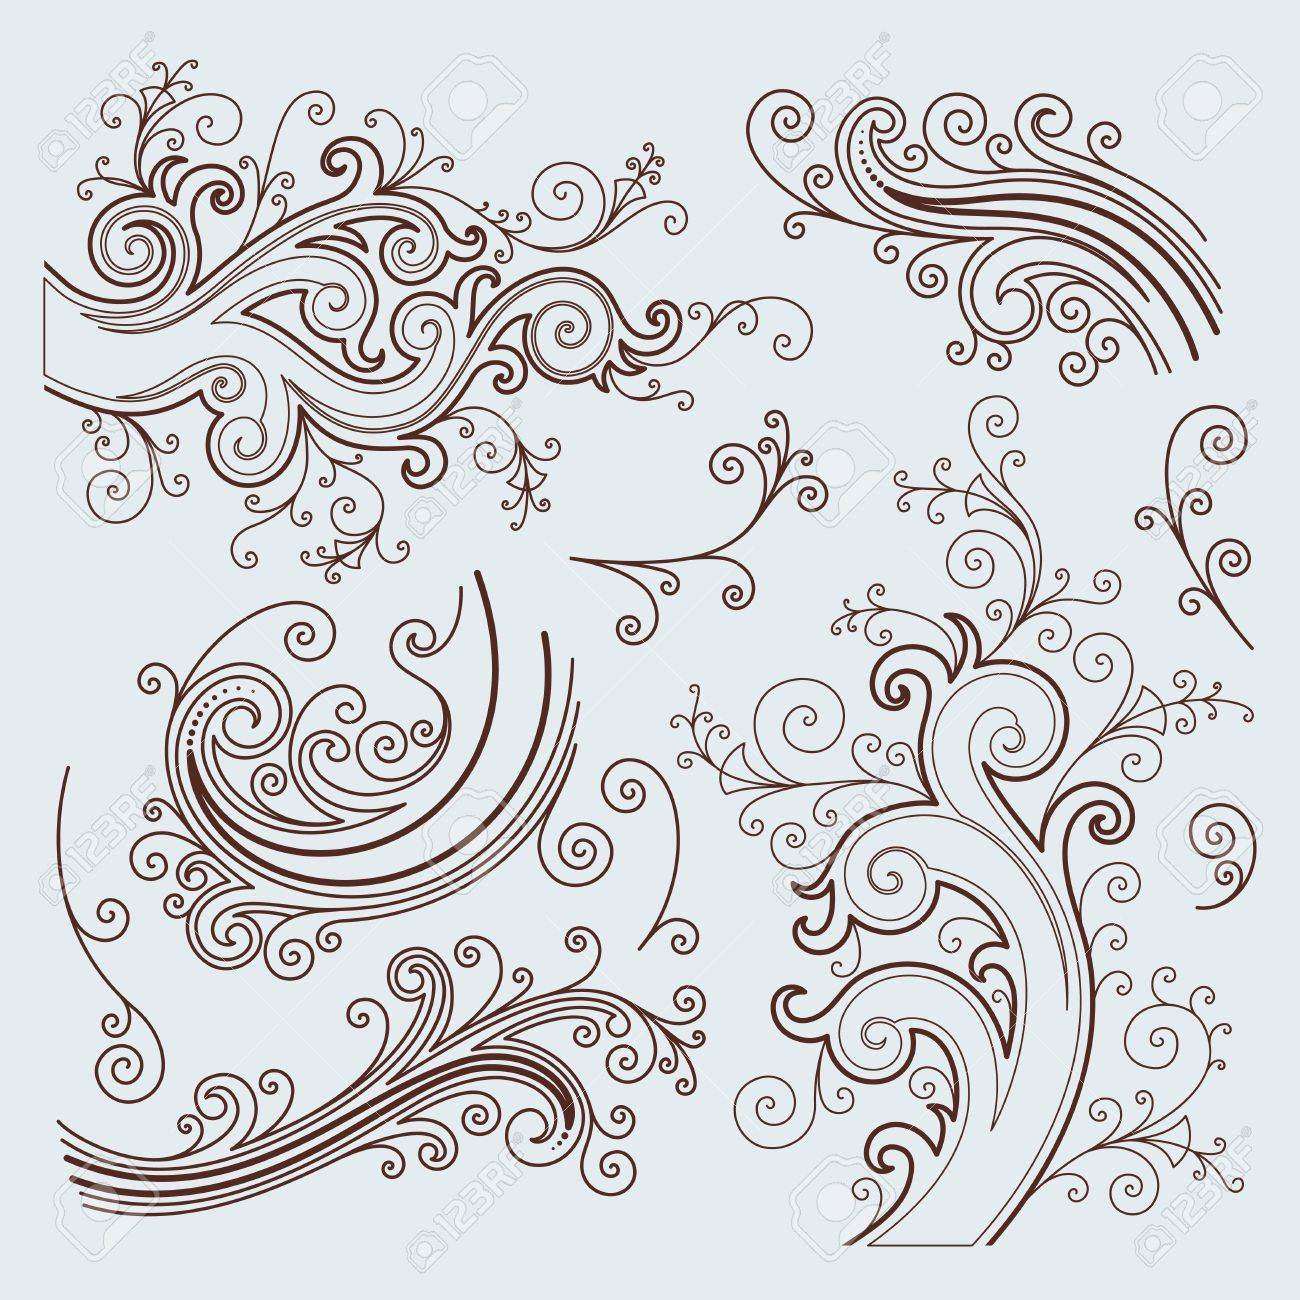 vector ornament set In flower style Stock Vector - 7145951